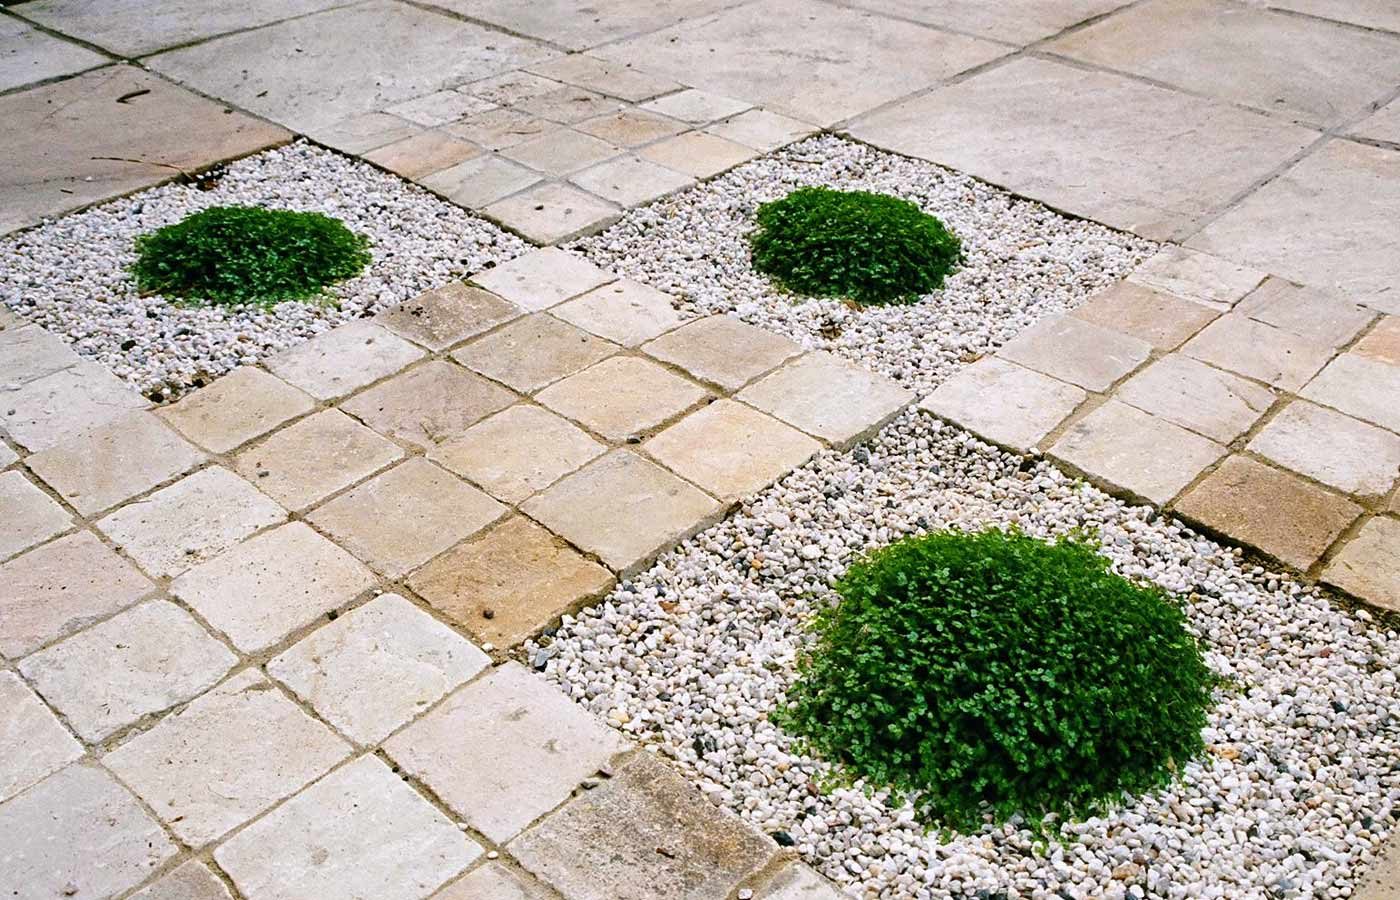 Sandstone setts, gravel greened with Soleirolia soleirolii